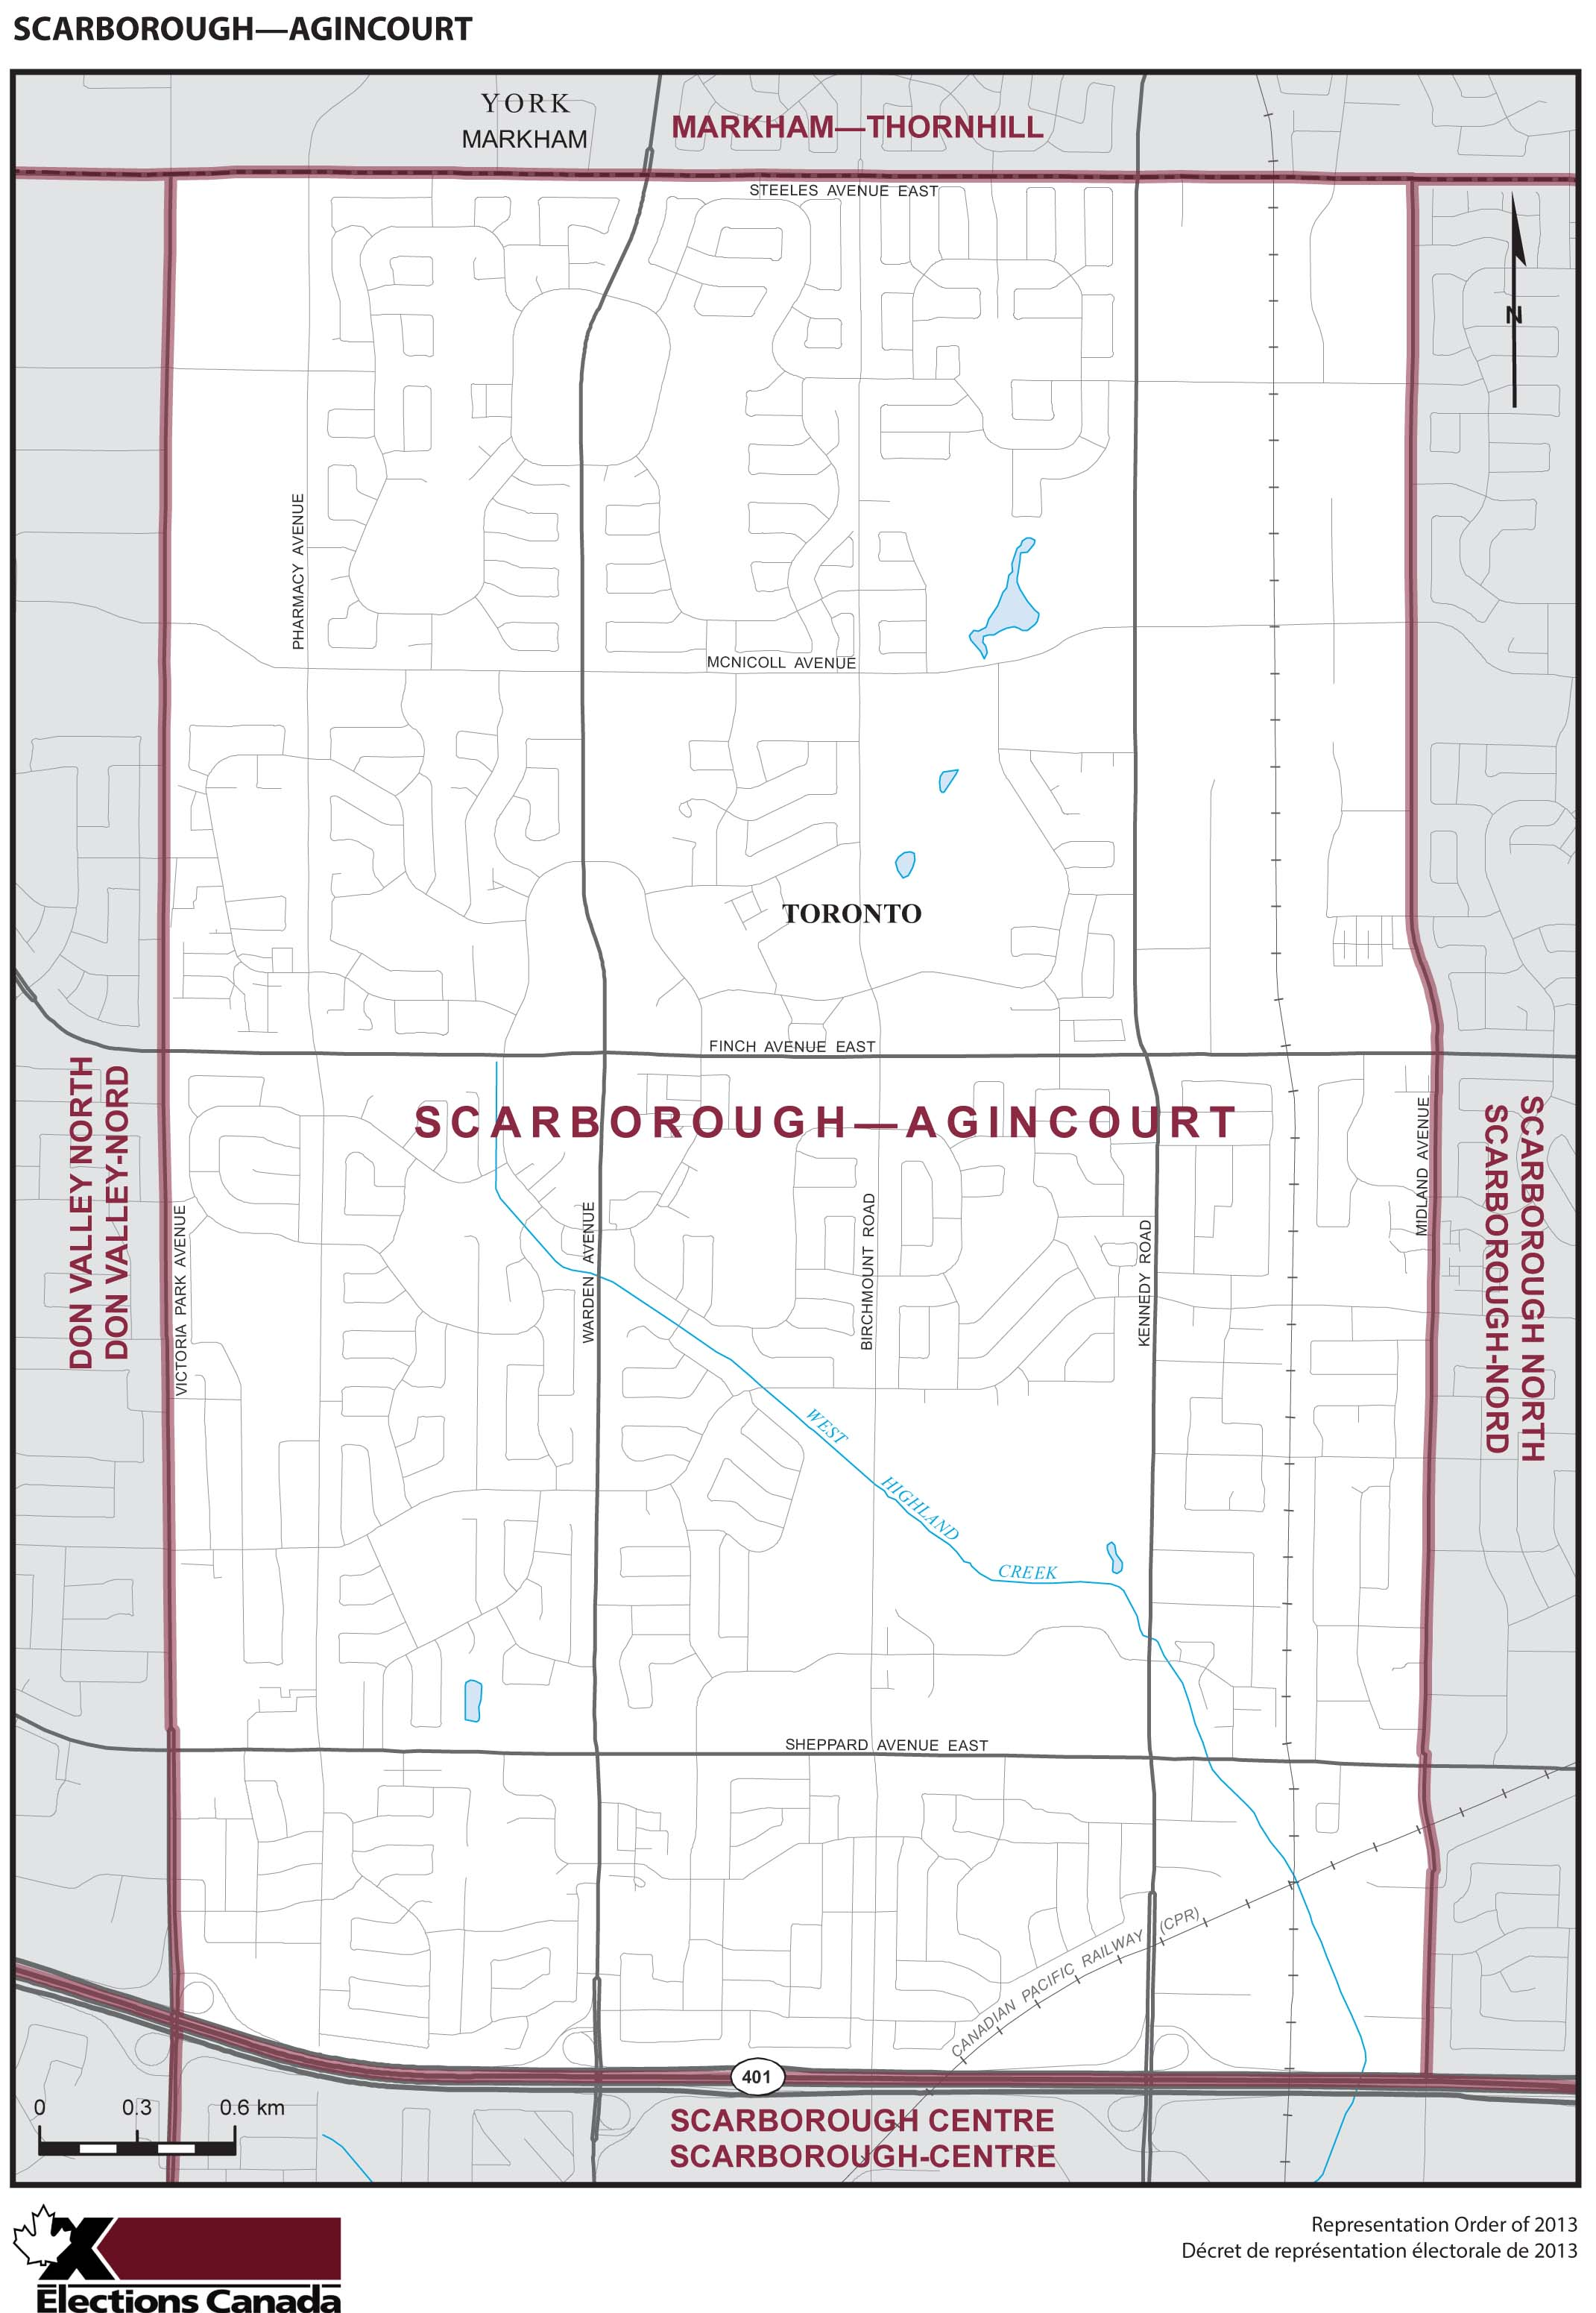 Map: Scarborough--Agincourt, Federal electoral district, 2013 Representation Order (in white), Ontario